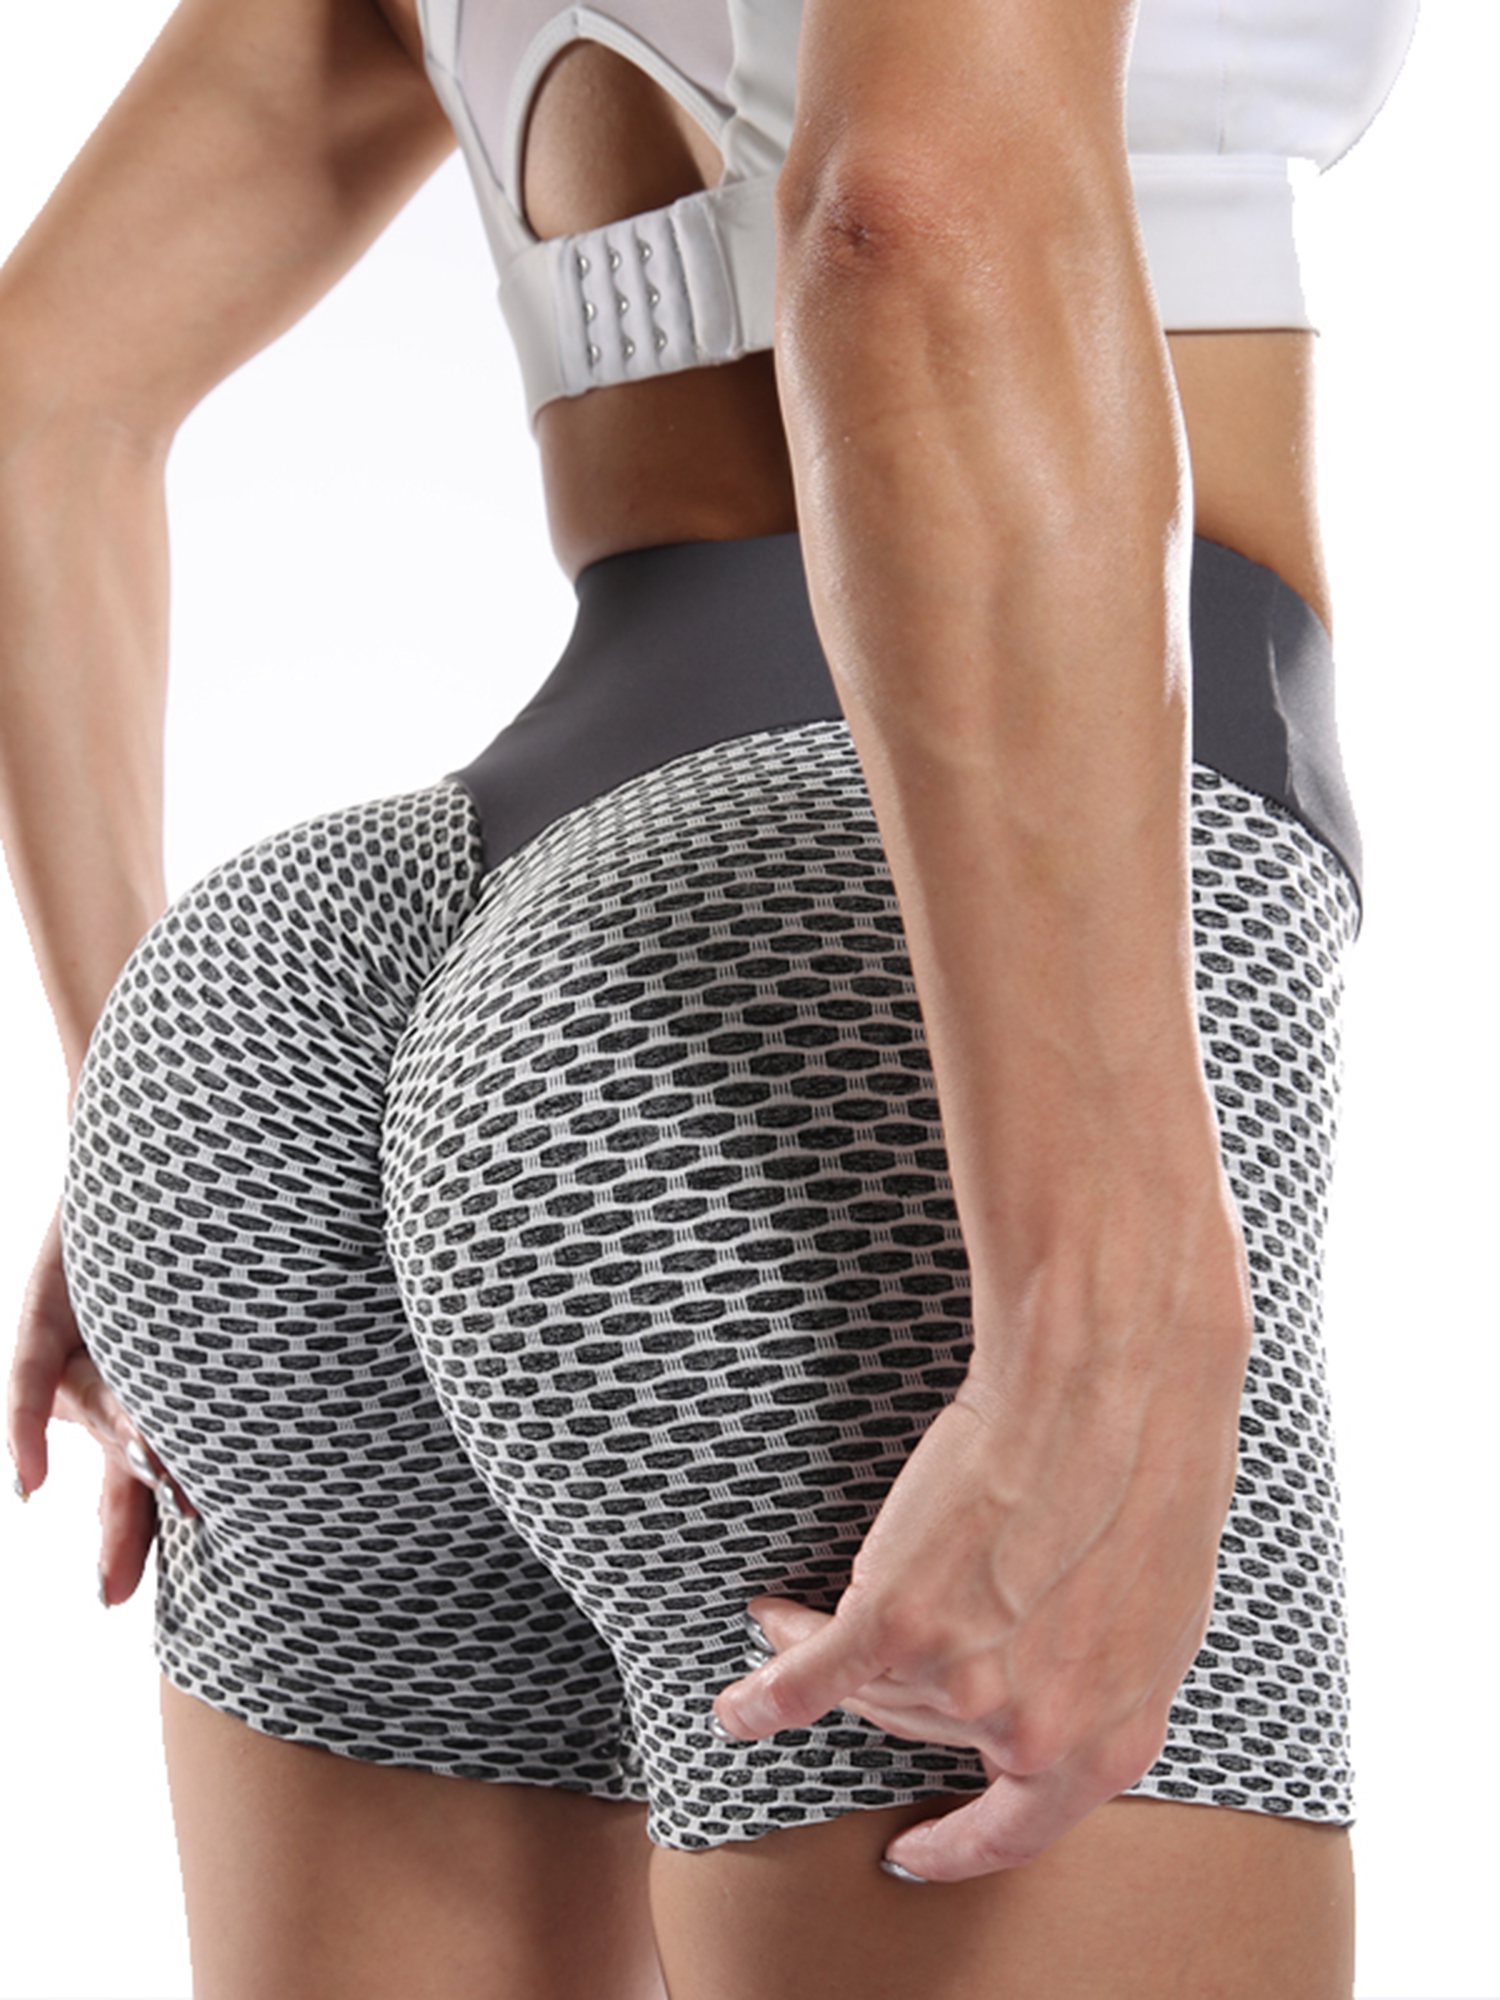 Details about  /Women Anti Cellulite Shorts Booty Butt Lifting Scrunch Yoga Sports Hot Pants Gym